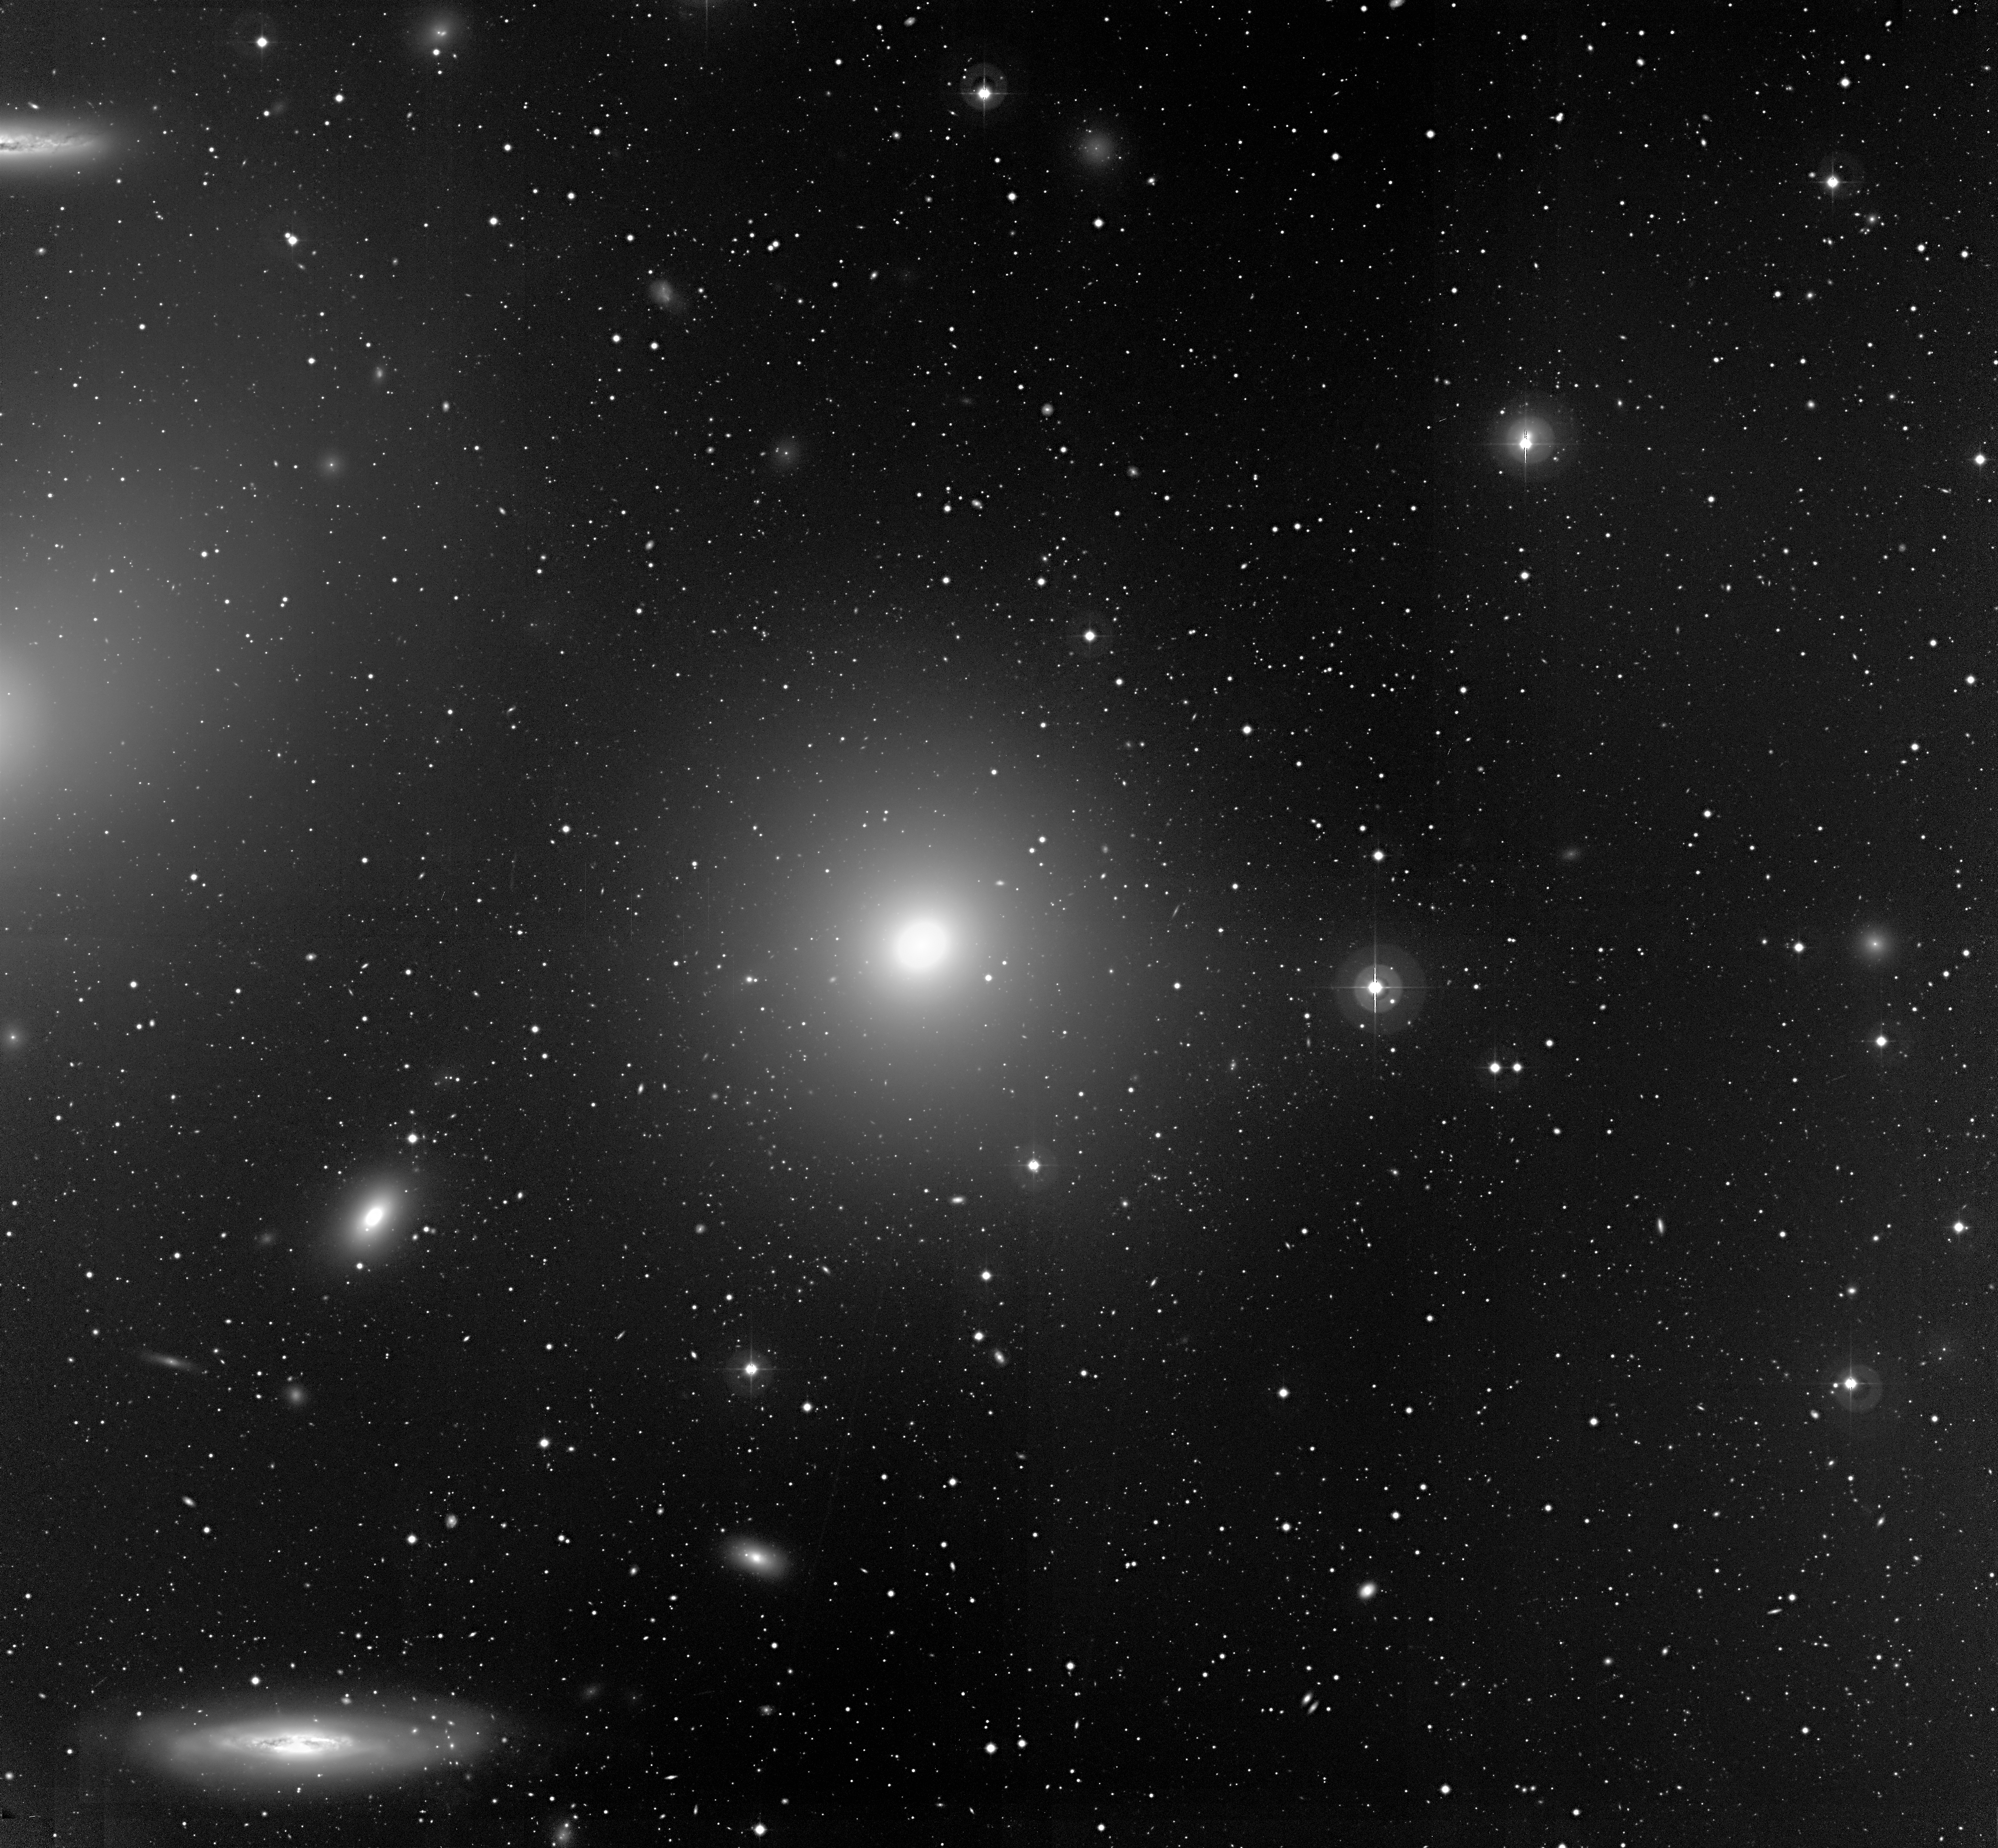 Depiction of NGC 4388